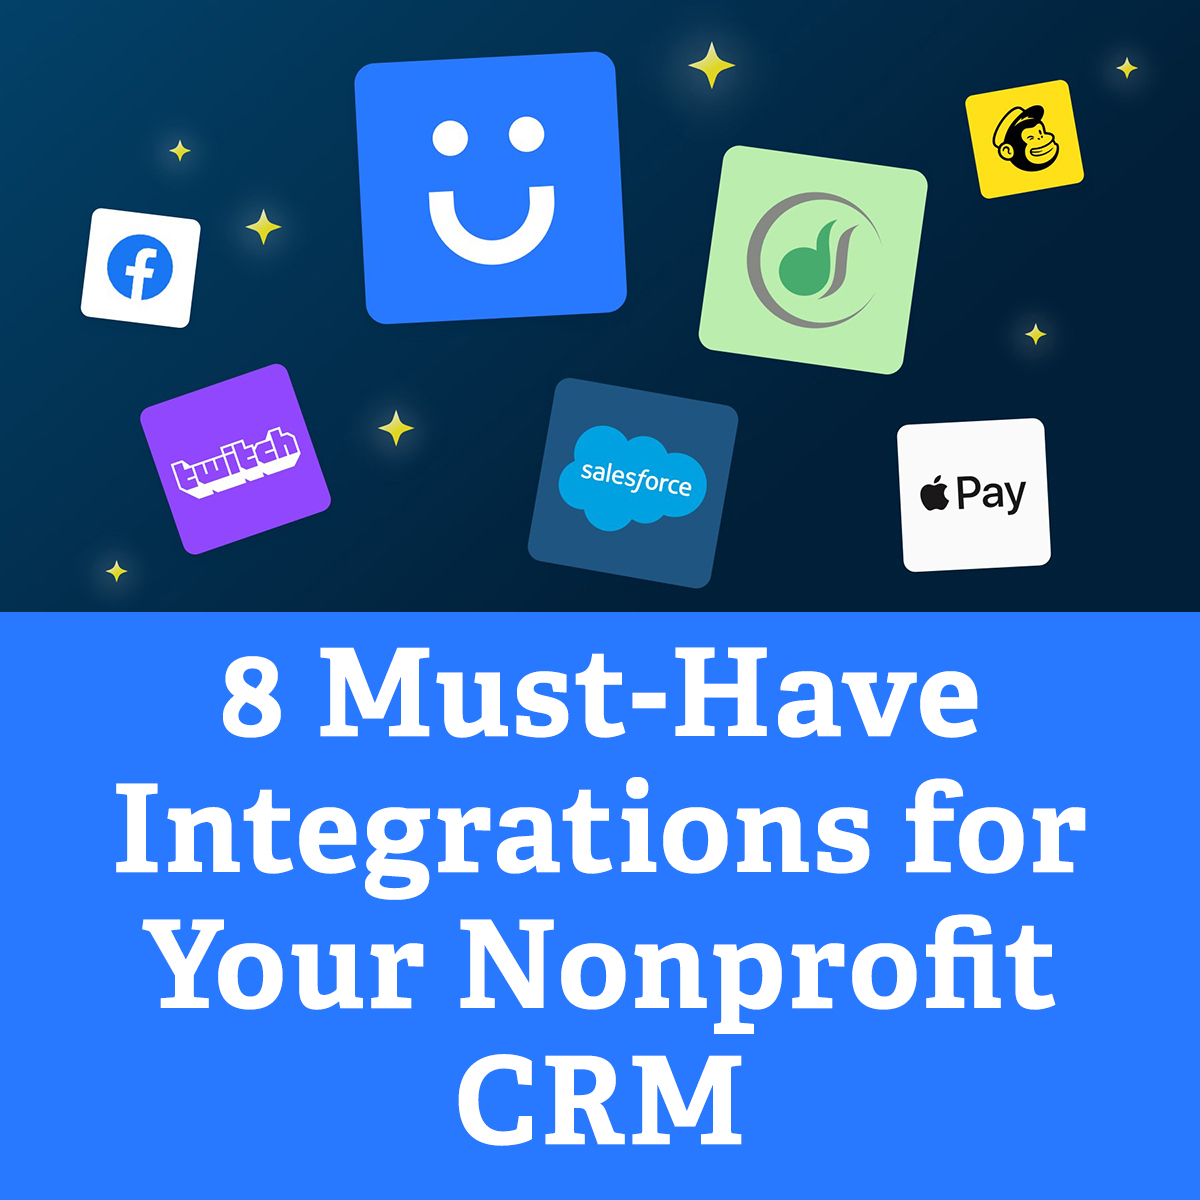 8 Must-Have Integrations for Your Nonprofit CRM